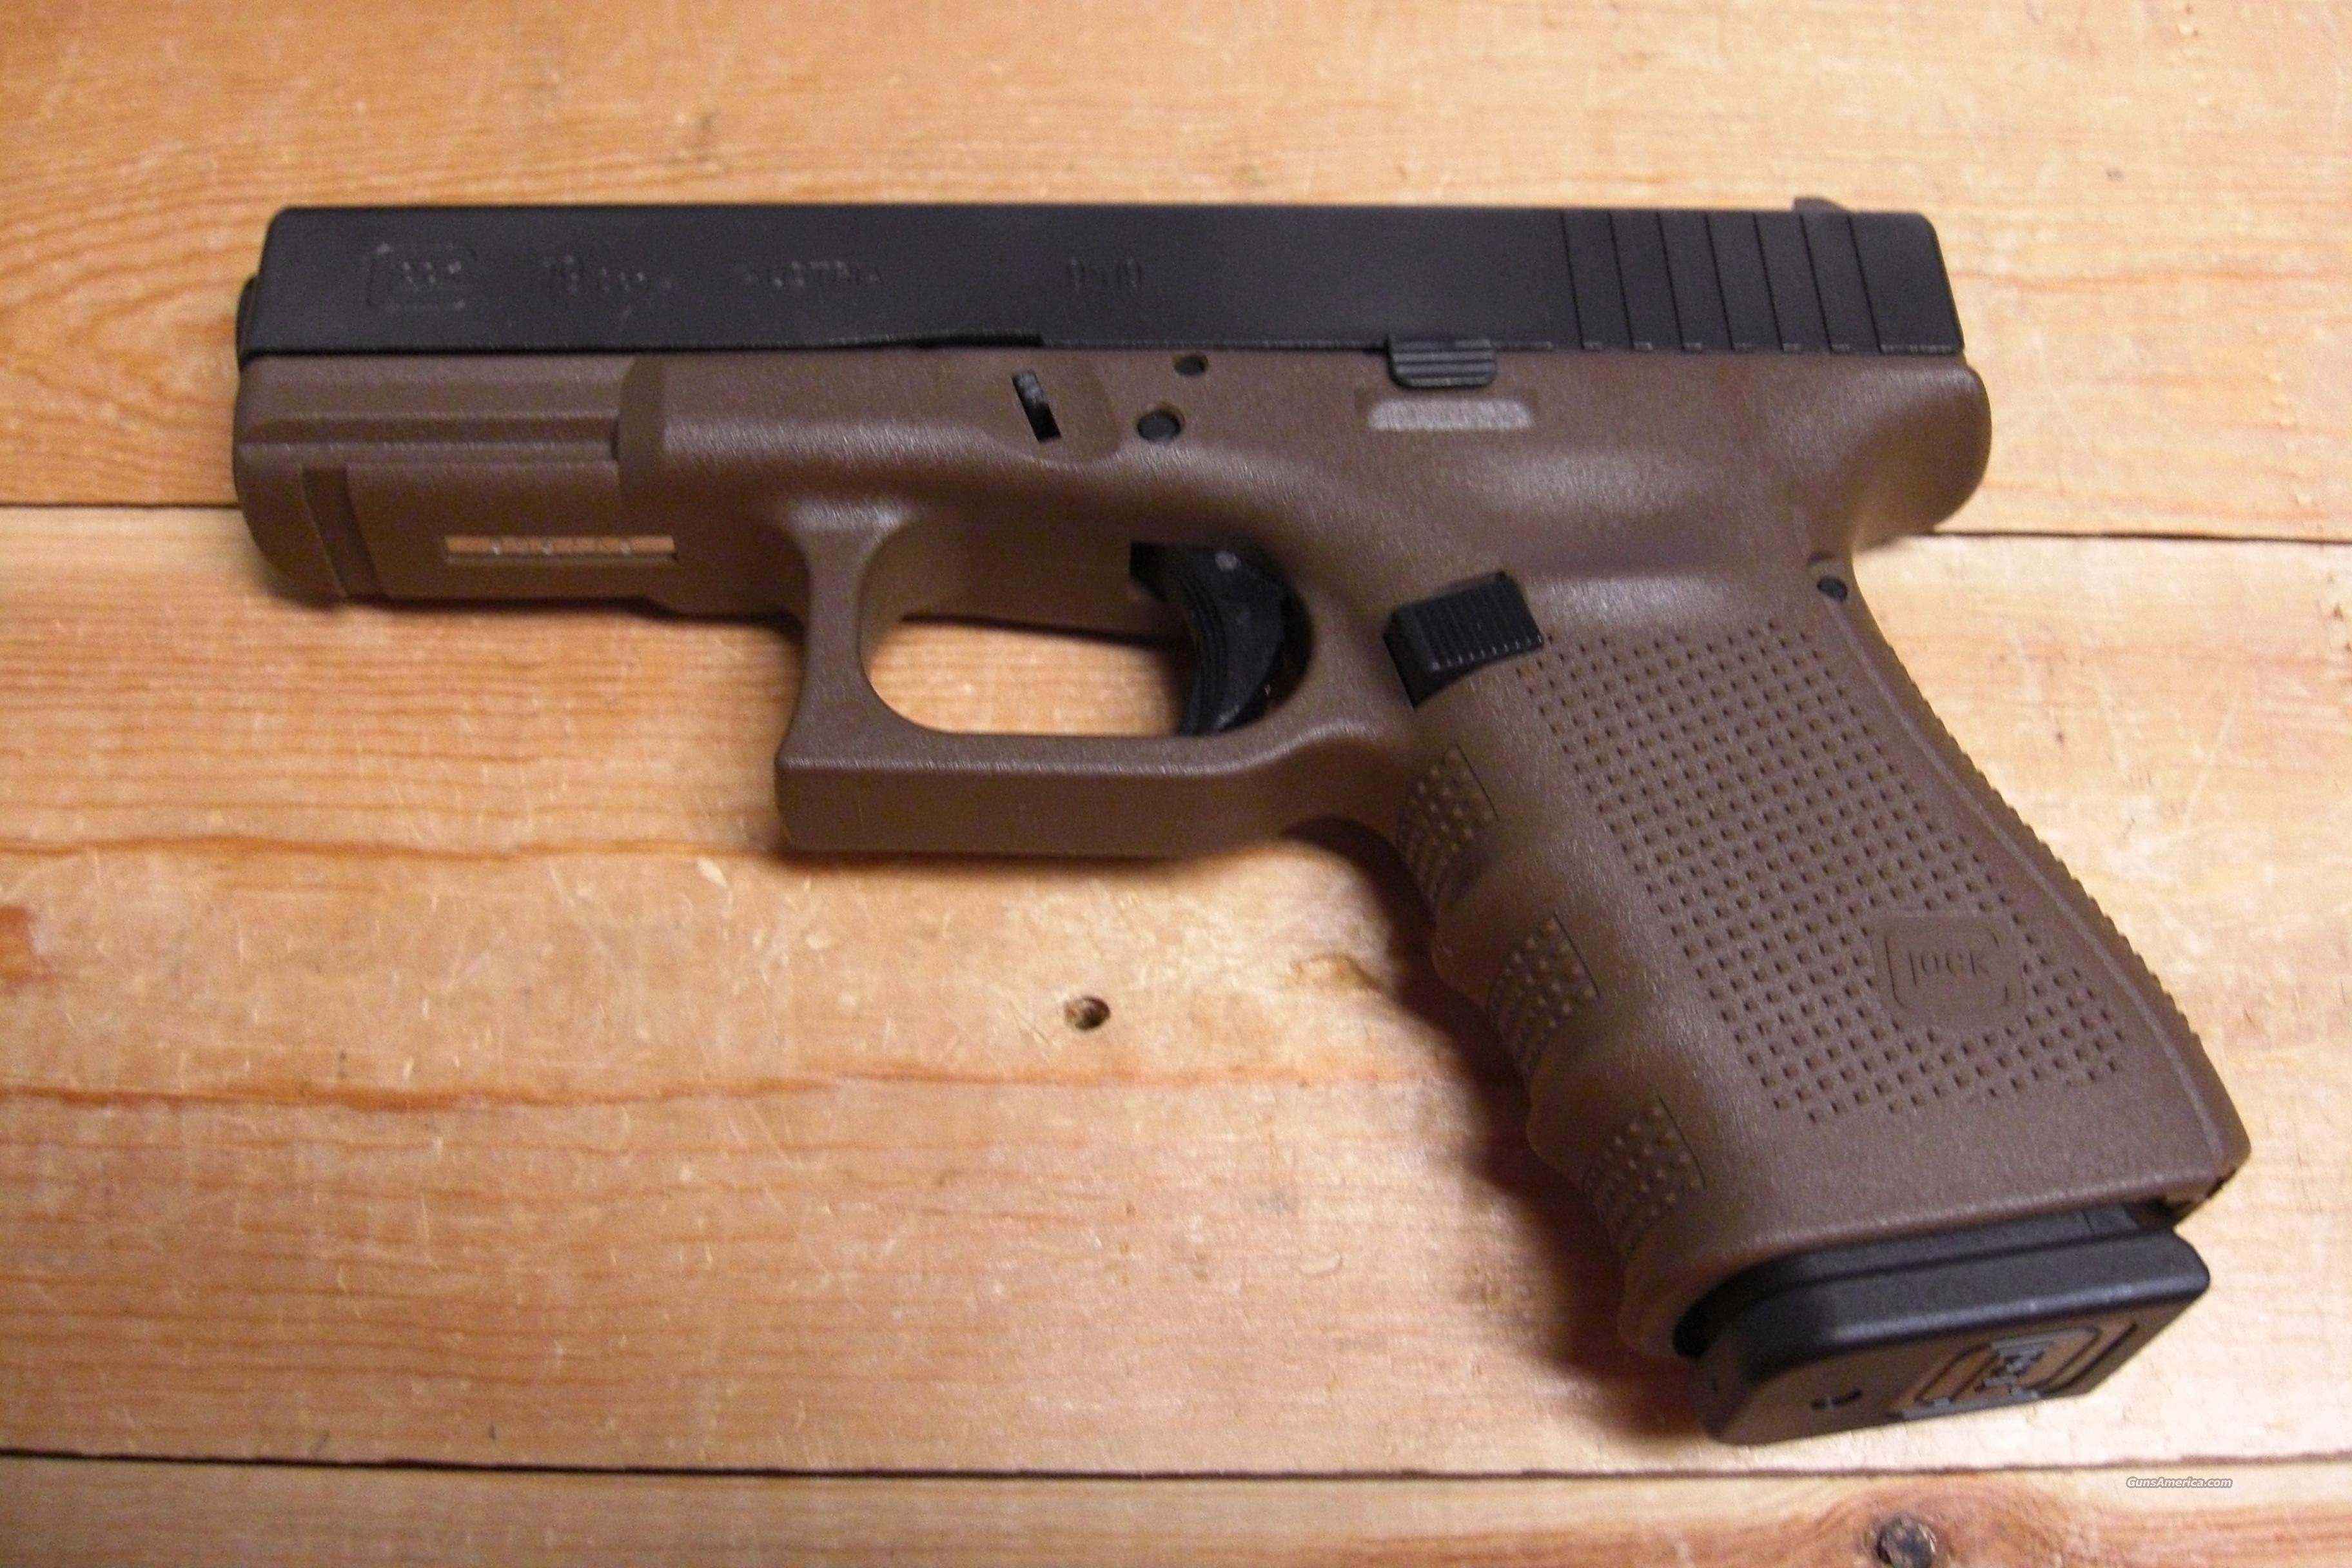 19 Gen 4, Flat dark earth finish, 3 15 rd. mags.  Guns > Pistols > Glock Pistols > 19